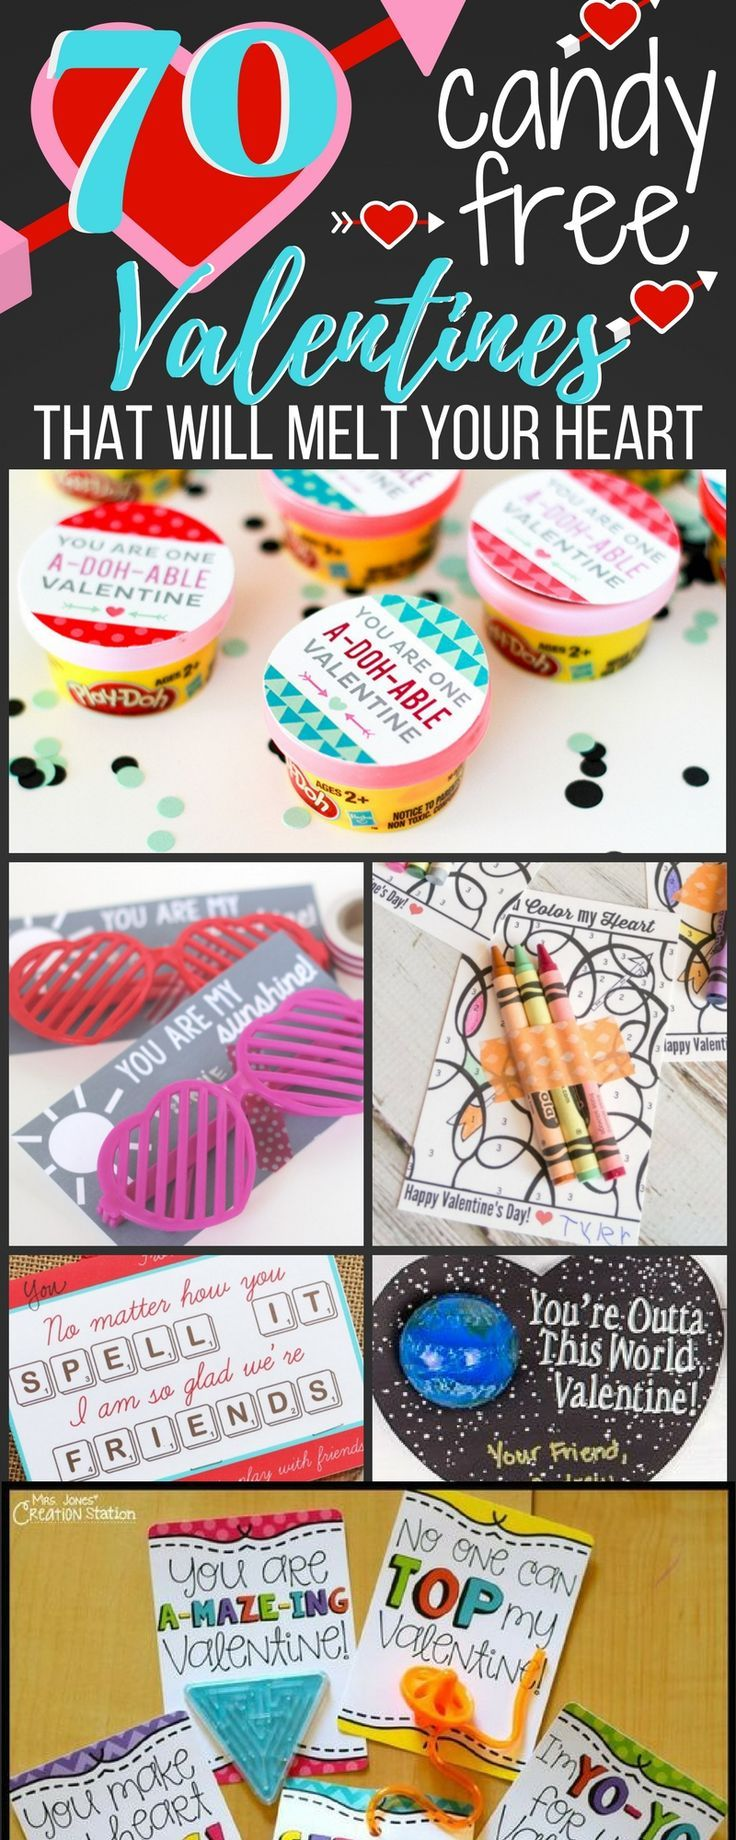 noncandy valentine card ideas  valentine's cards for